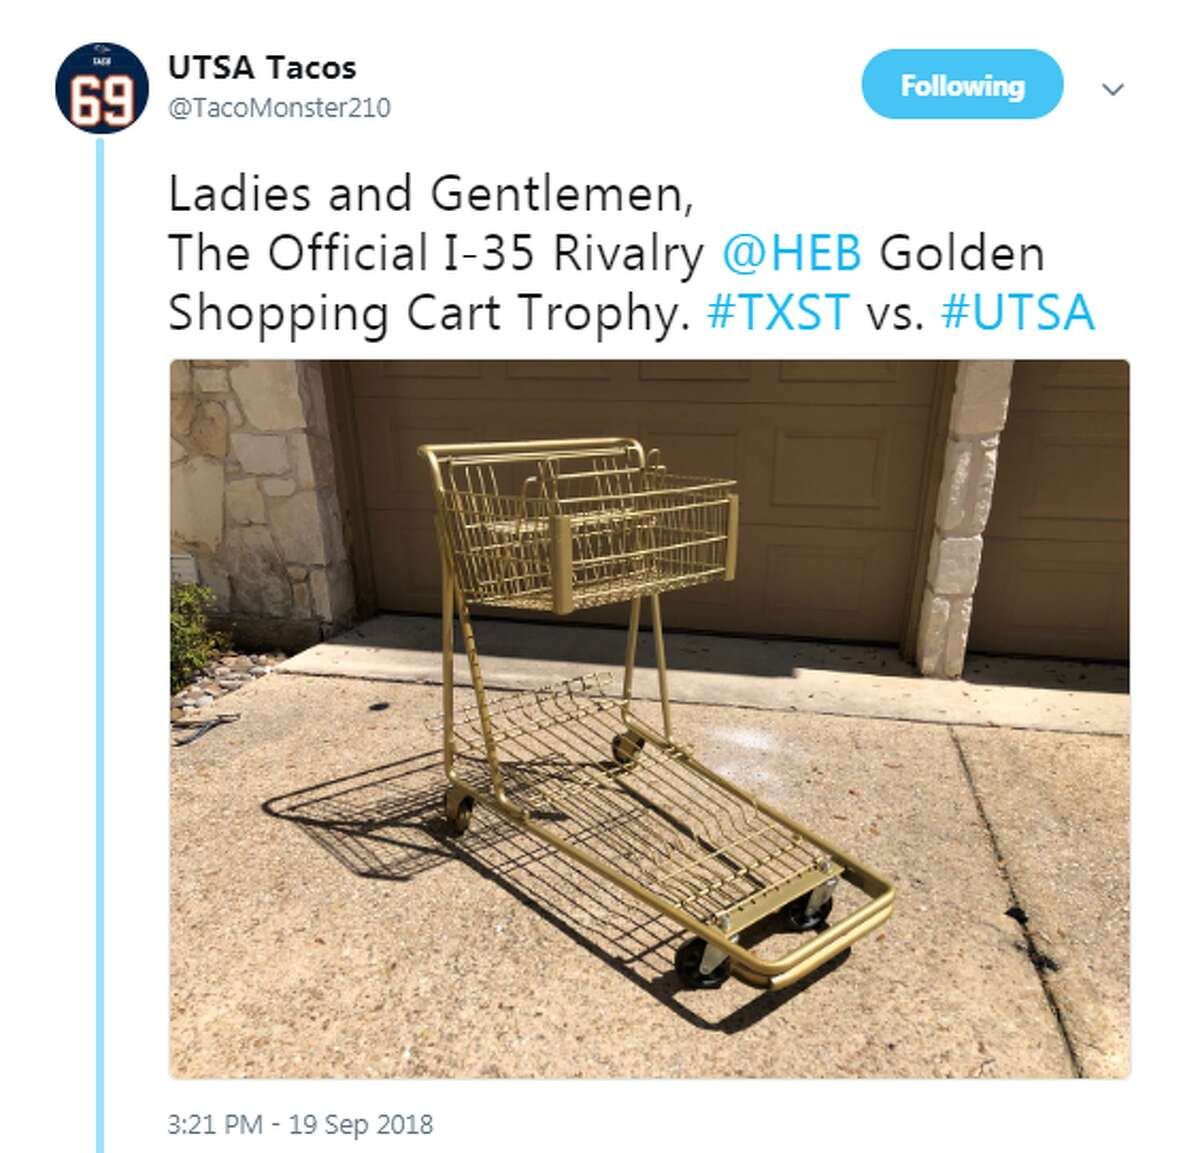 @TacoMonster210: Ladies and Gentlemen, The Official I-35 Rivalry @HEB Golden Shopping Cart Trophy. #TXST vs. #UTSA